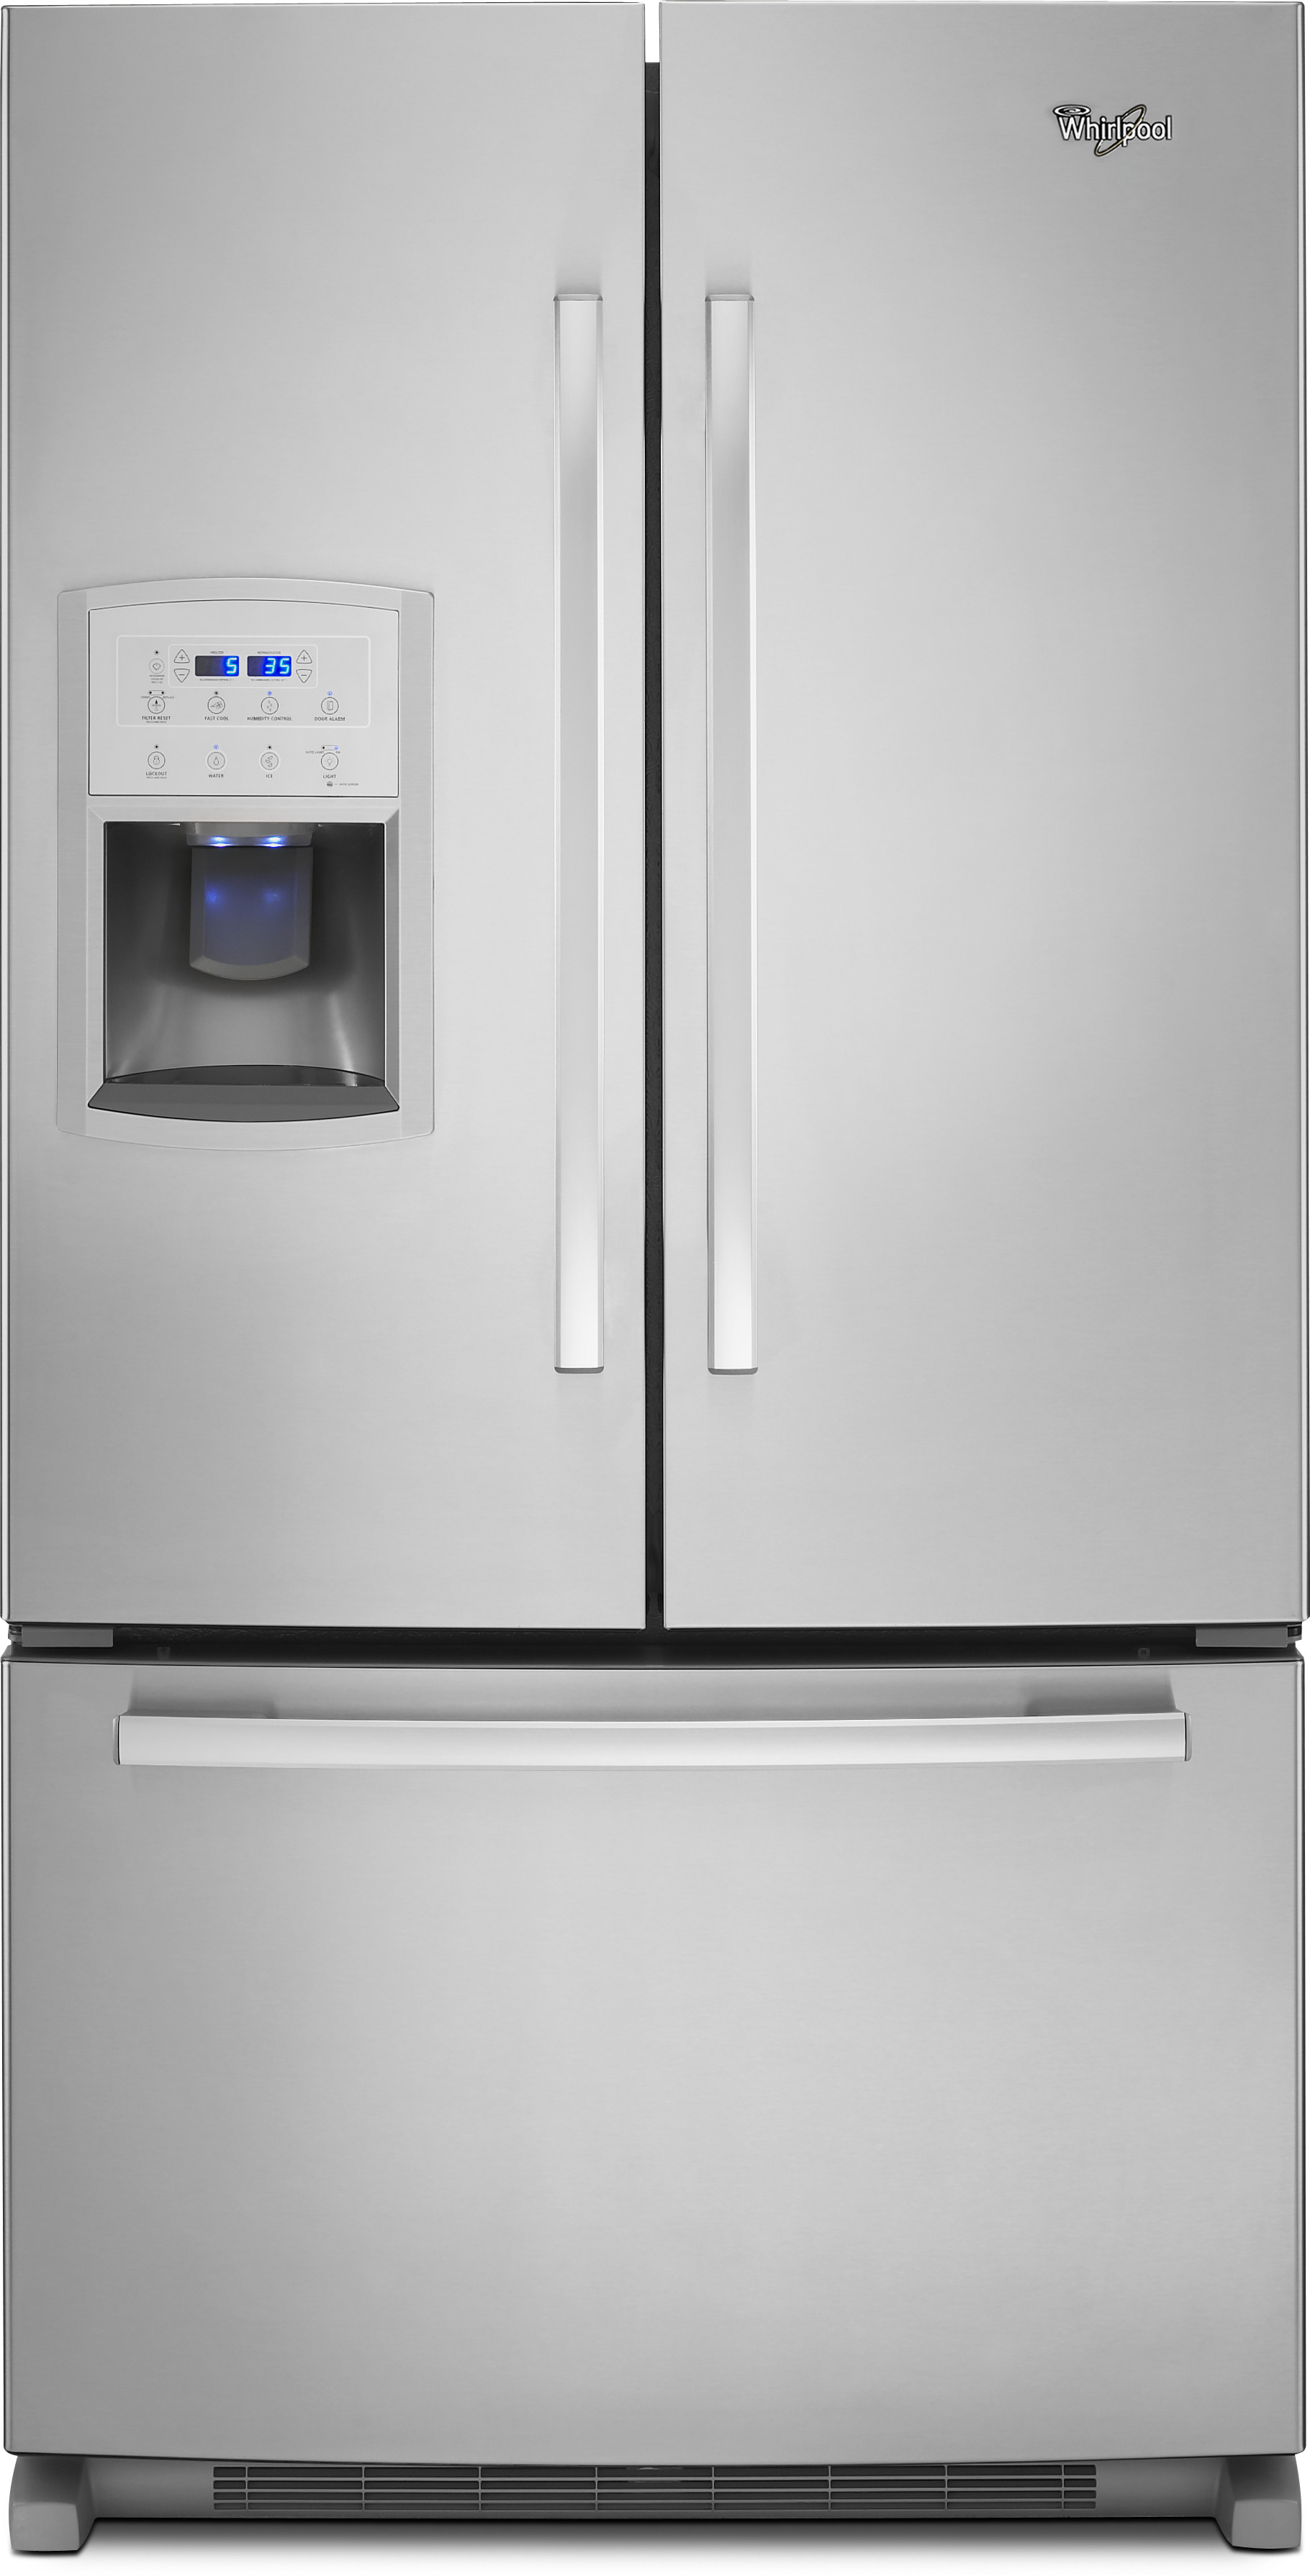 Whirlpool GI0FSAXVY 36 Inch Counter Depth French Door Refrigerator With  Temperature Controlled Pantry, PuR® Water Filter, Adaptive Defrost, ...